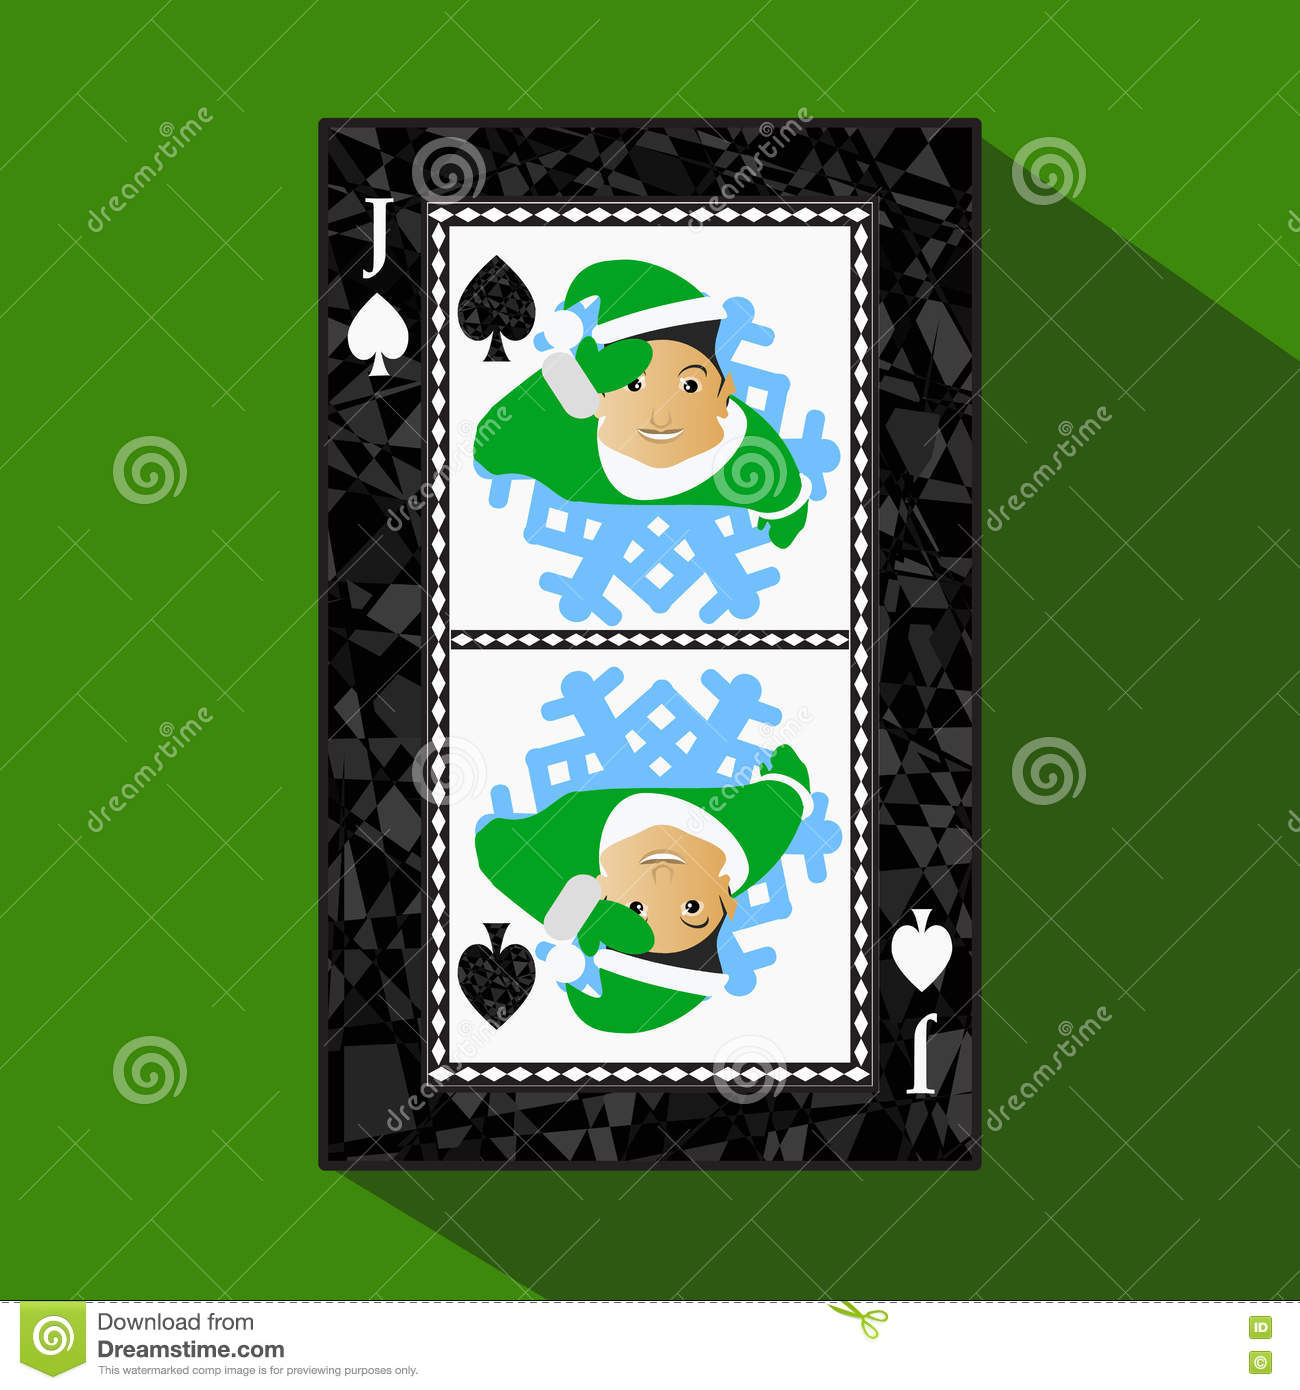 Playing Card. The Icon Picture Is Easy. Peak Spide JACK JOKER NEW ...